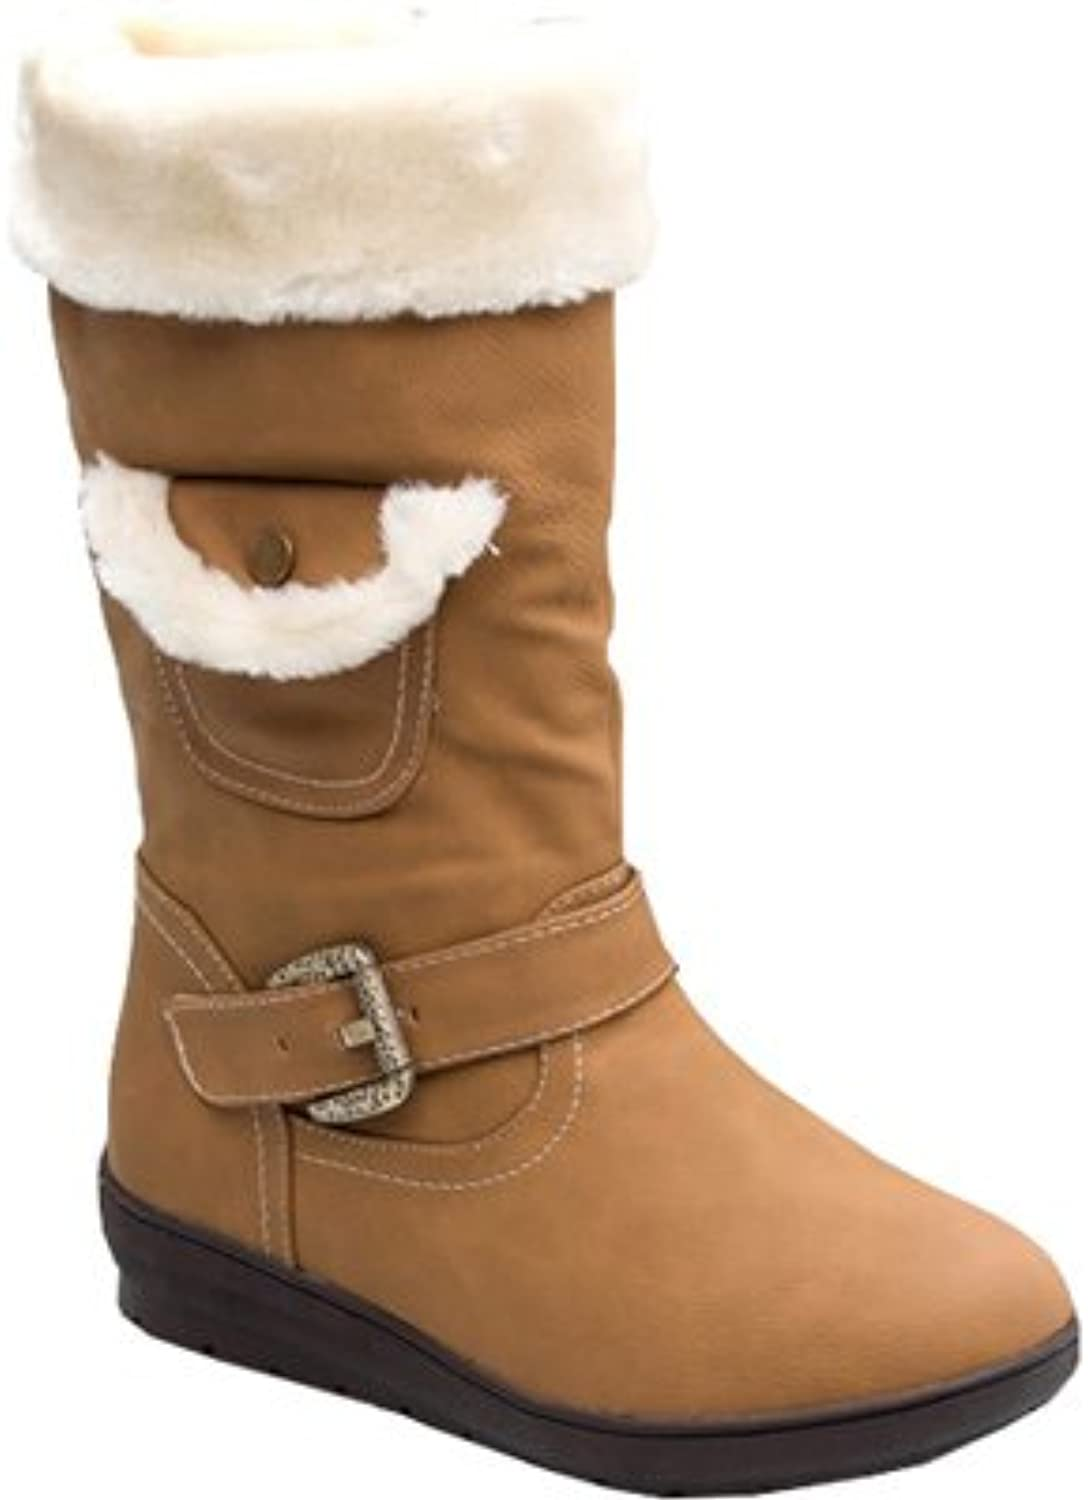 Reneeze Womens Coco-3 Faux Fur Mid Calf Boots